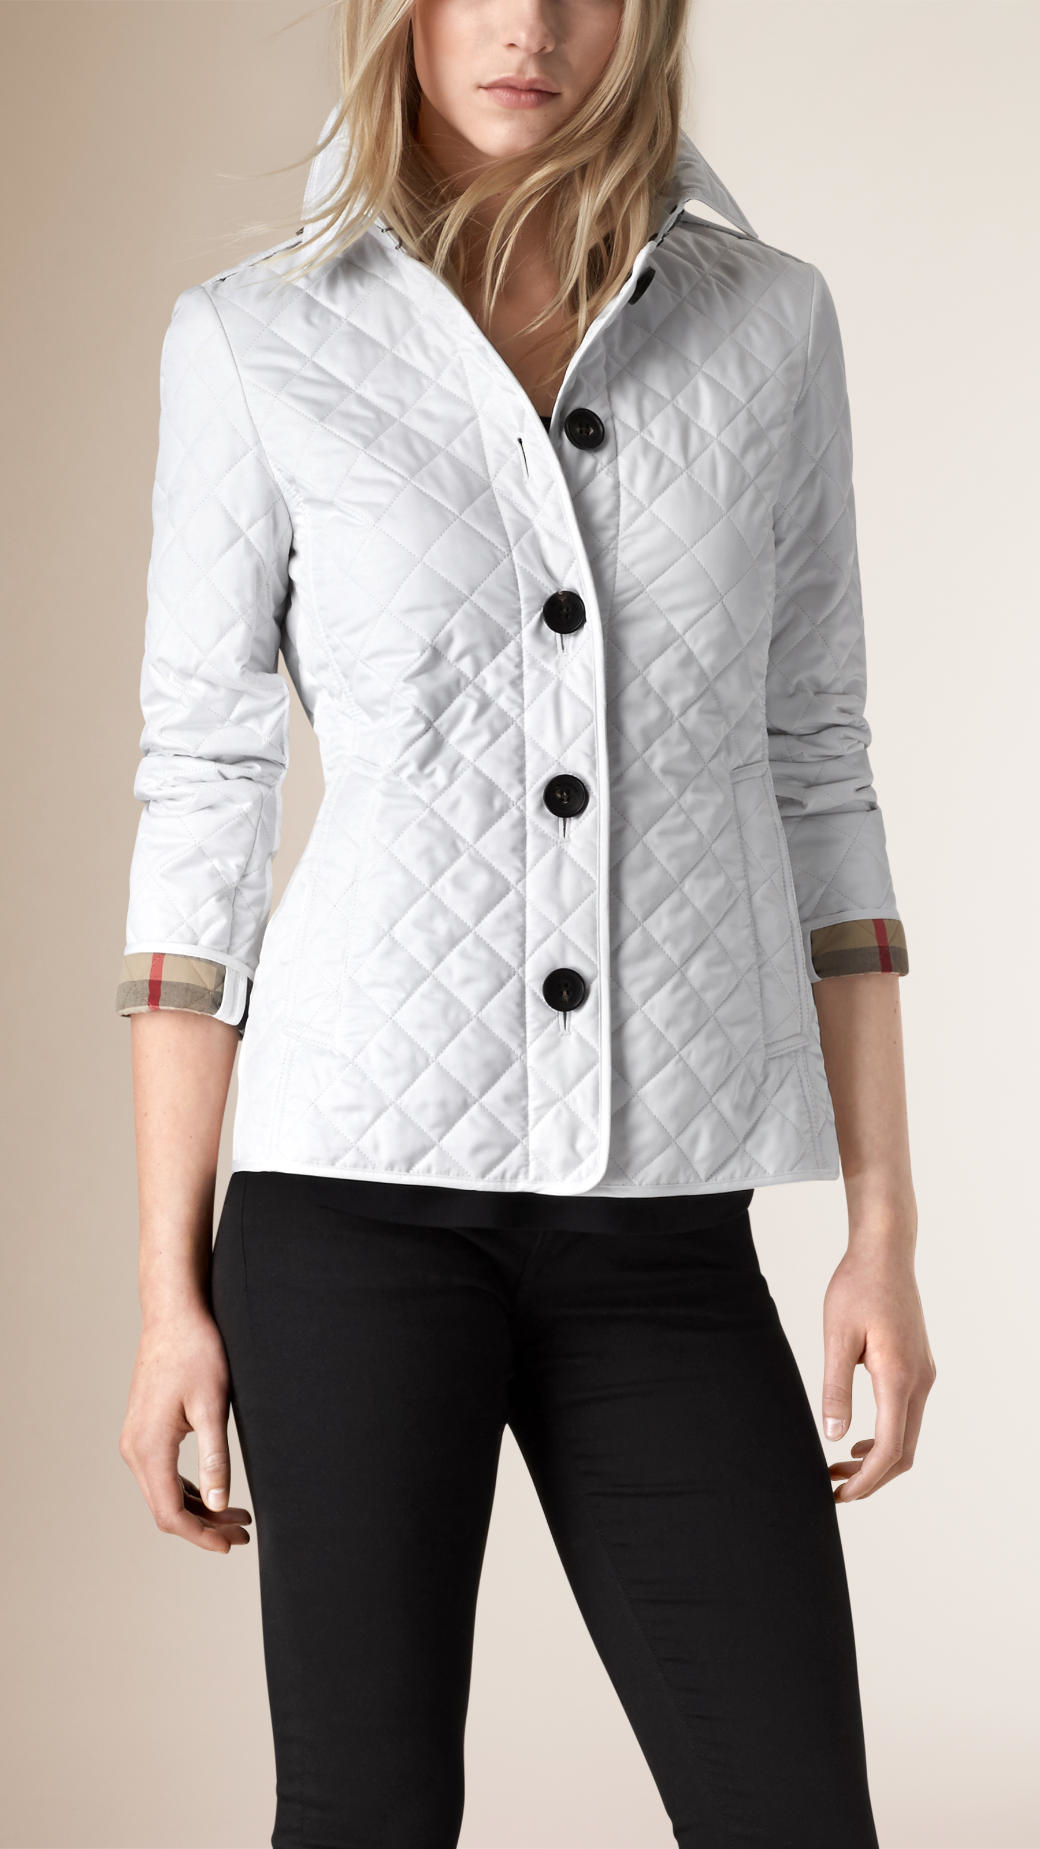 Lyst - Burberry Diamond-Quilted Jacket in White : white quilted coat - Adamdwight.com